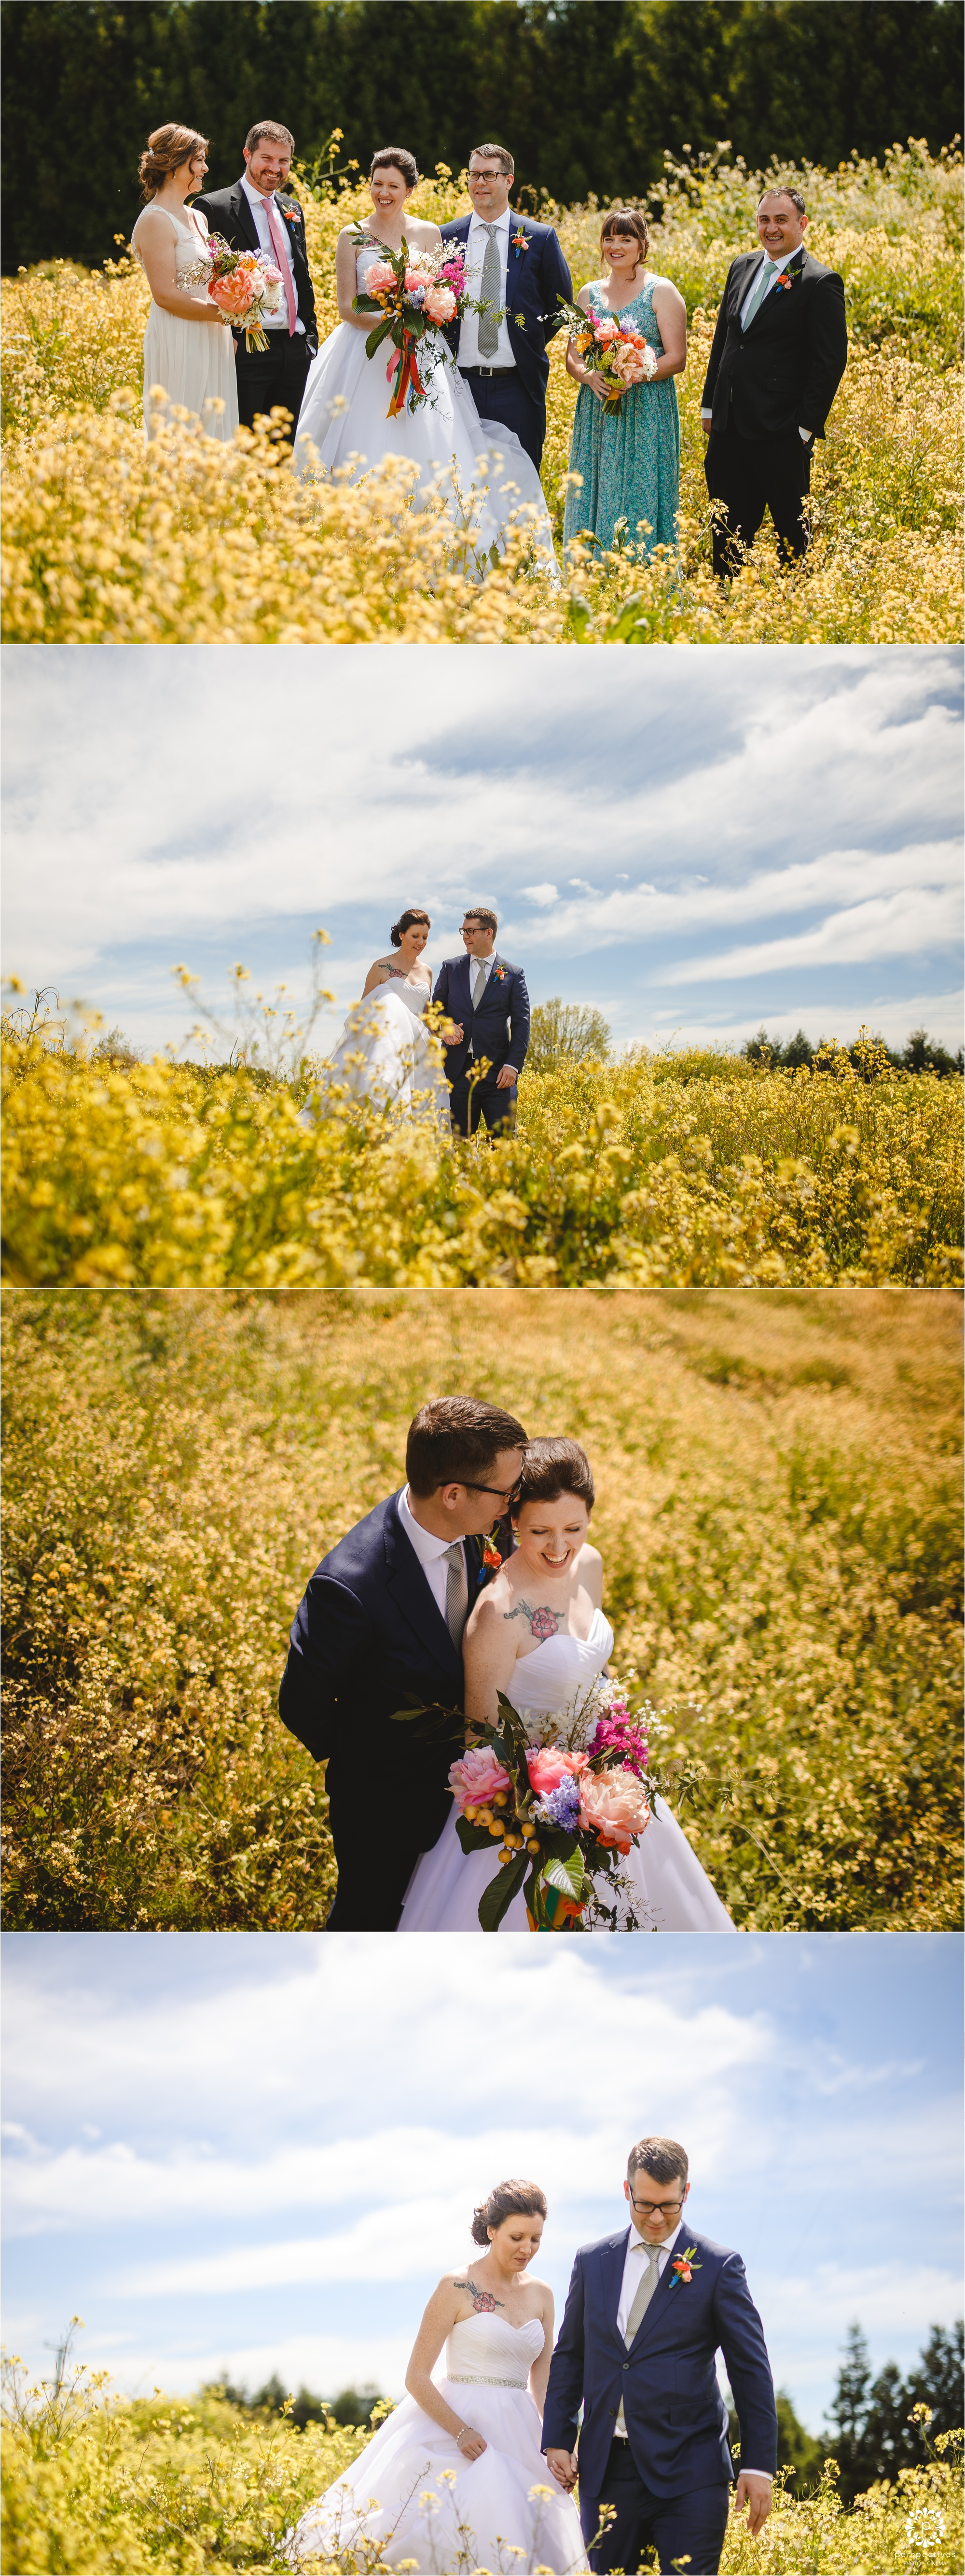 bracu_wedding_photos_0009